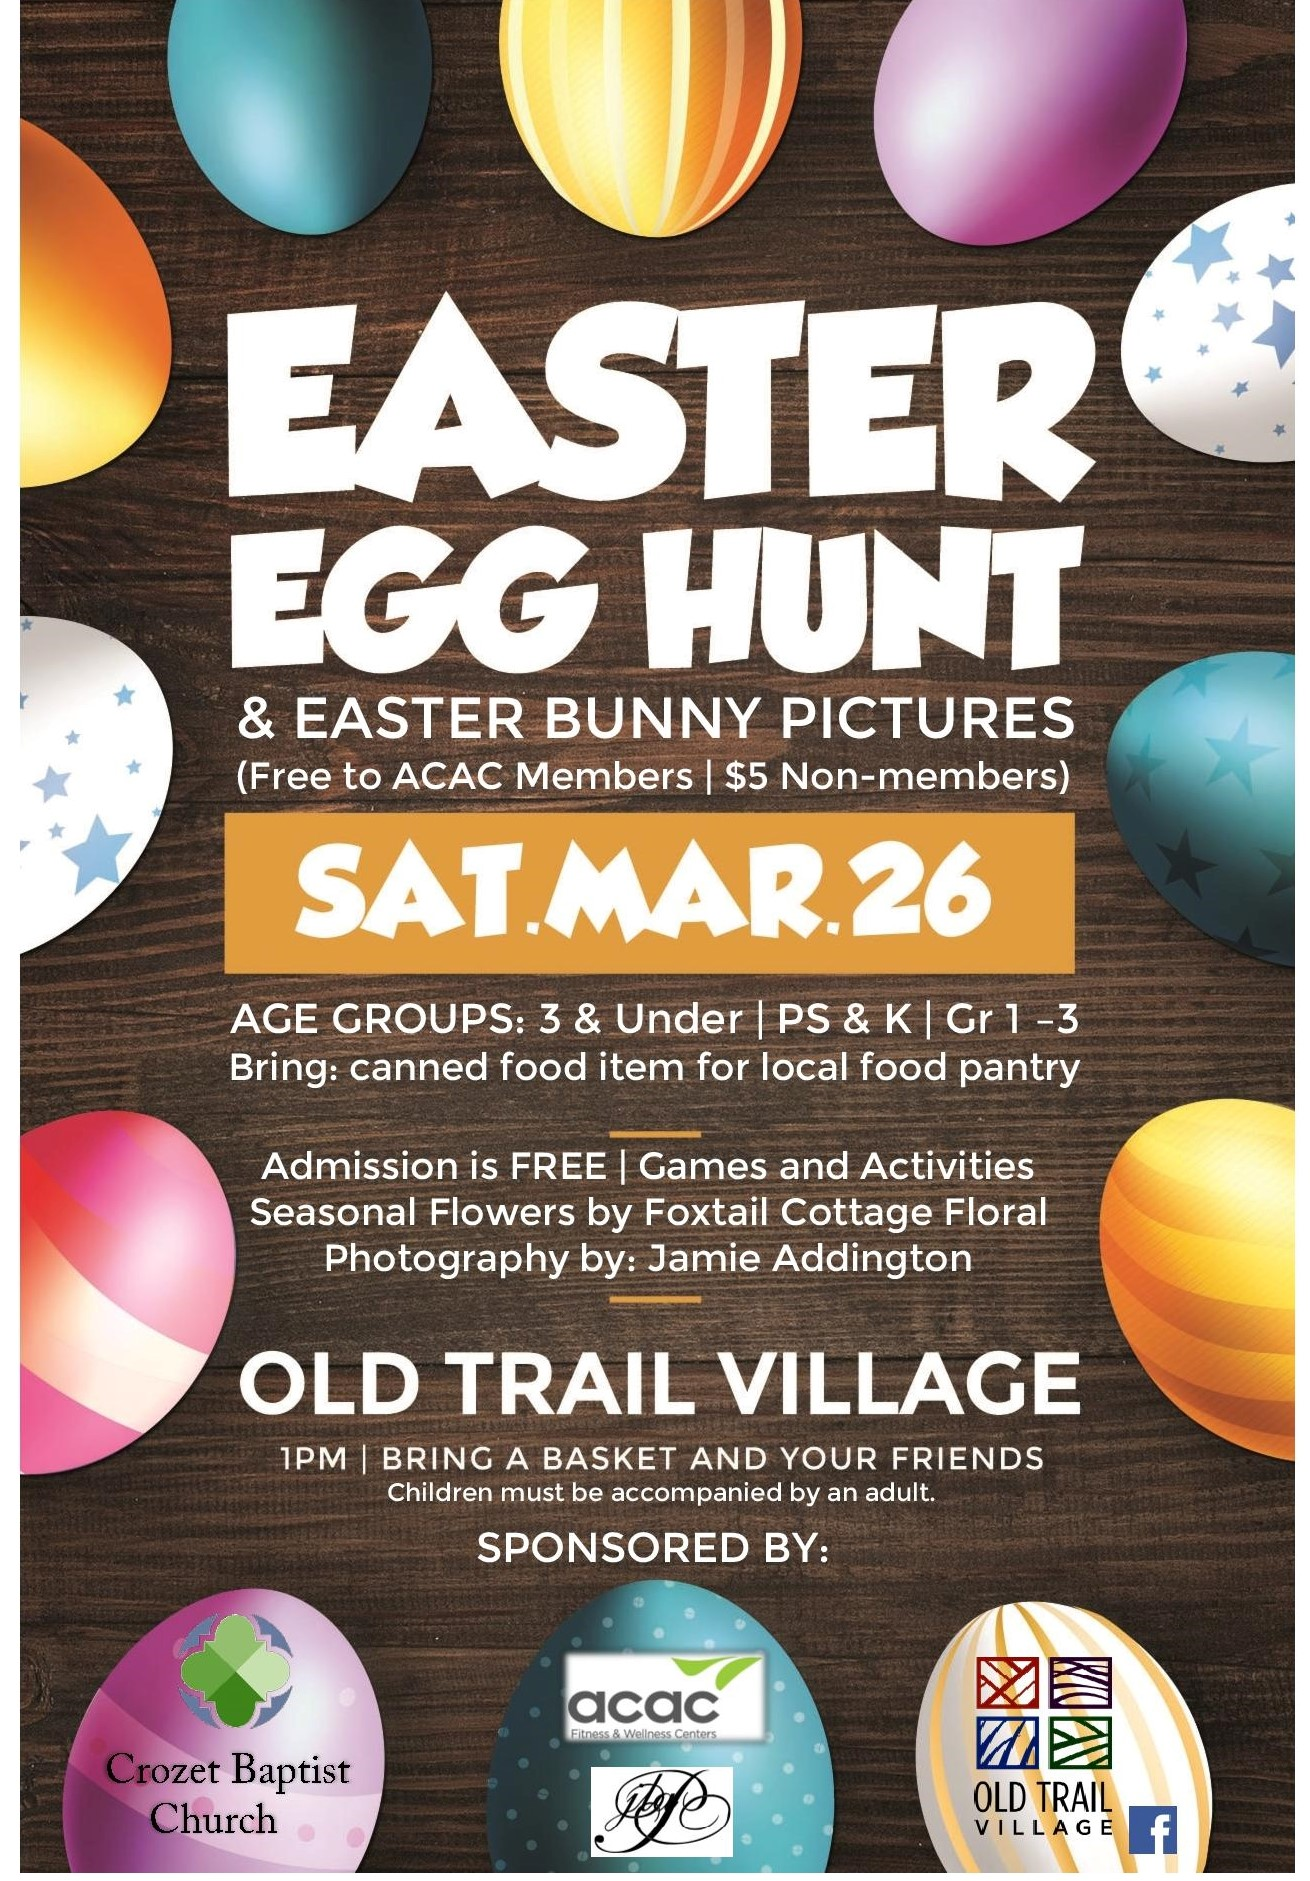 Easter Egg Hunt Flyer-(Full Page view)